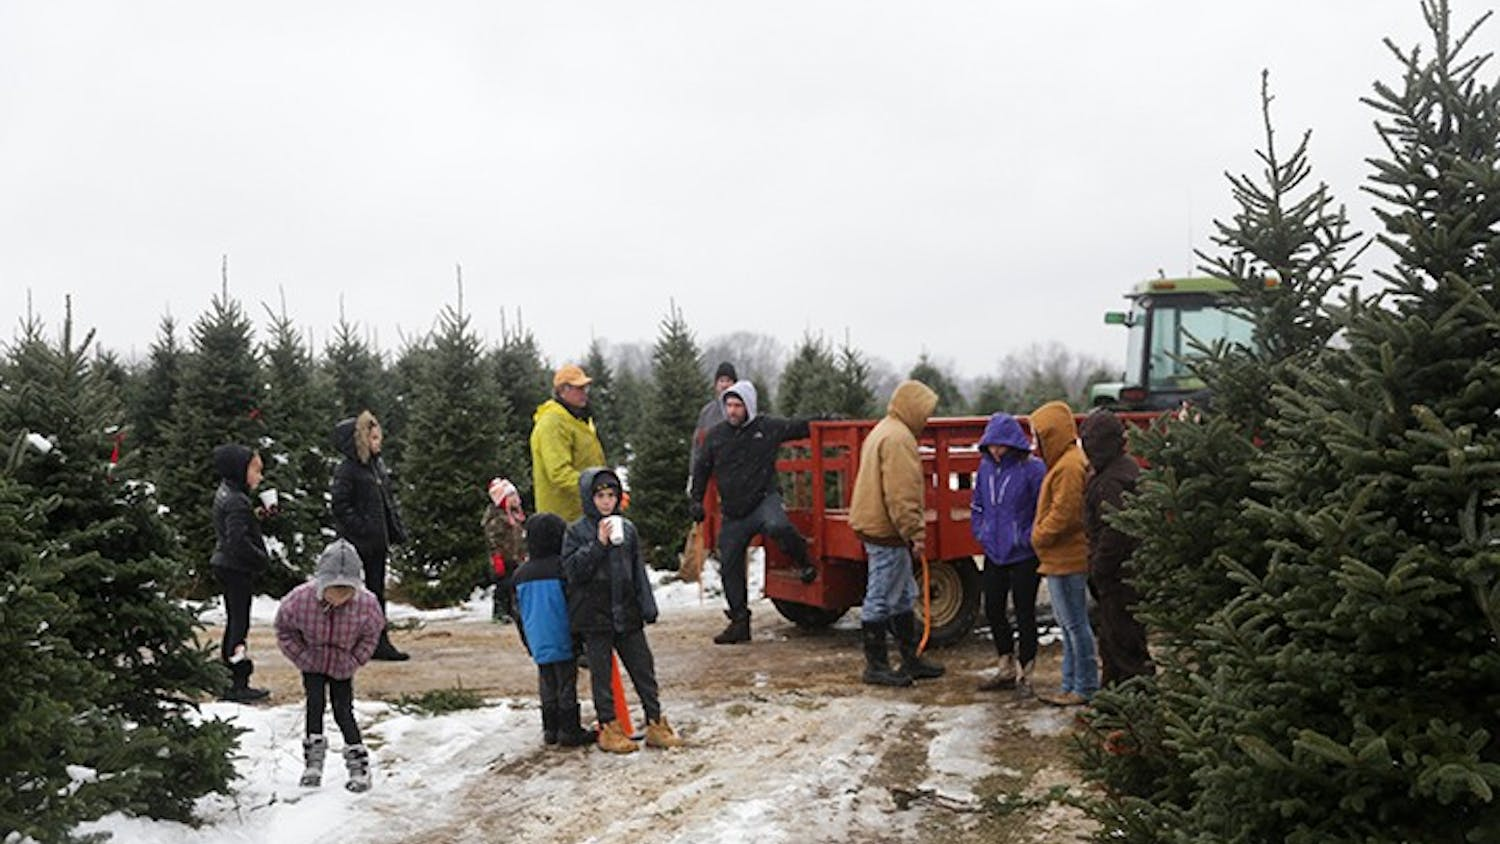 A popular family tradition is cutting down a Christmas tree for the holidays.